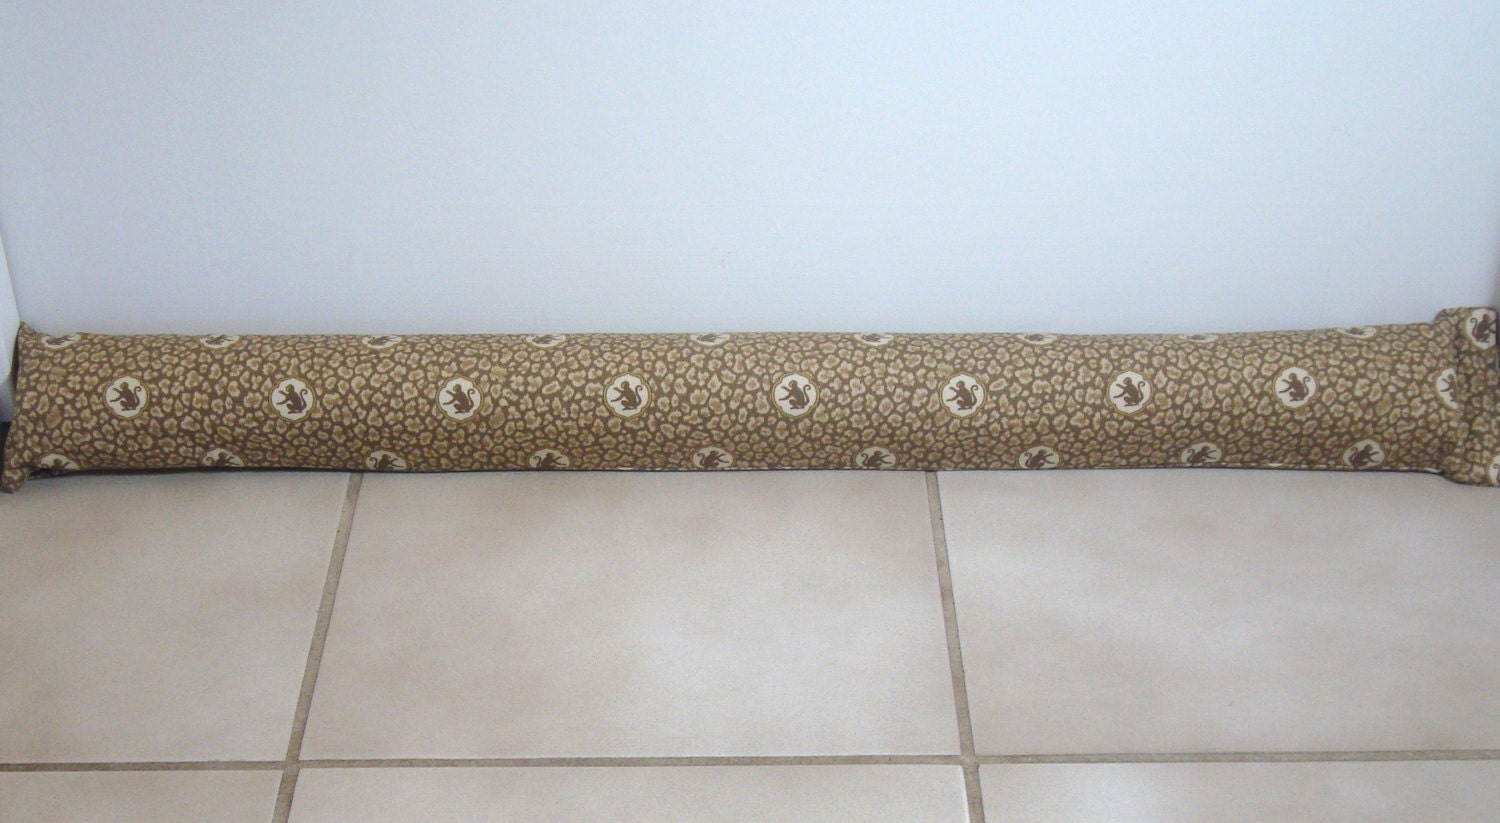 Leopard Monkey Door Draft Stopper Animal Door Draft Blocker